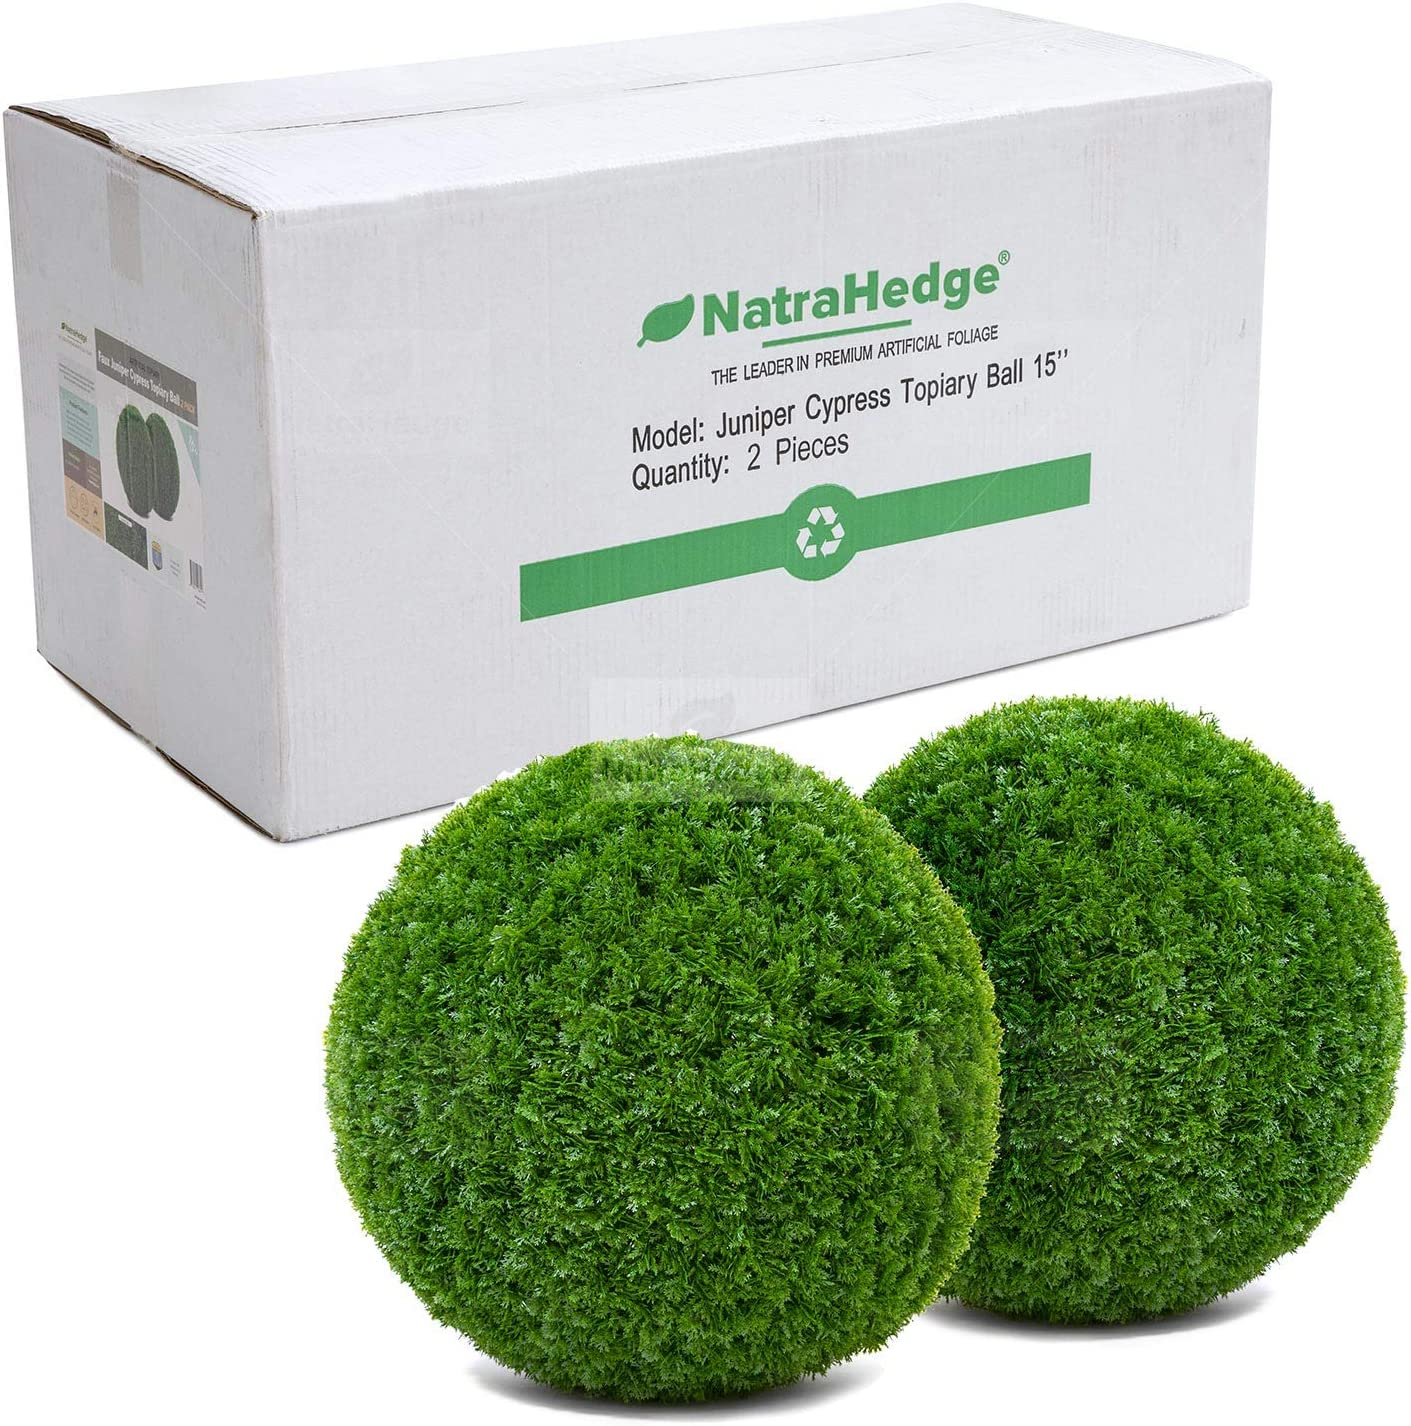 NatraHedge Artificial Topiary Ball Popular Ranking TOP6 Set Foliage - for Balls Faux